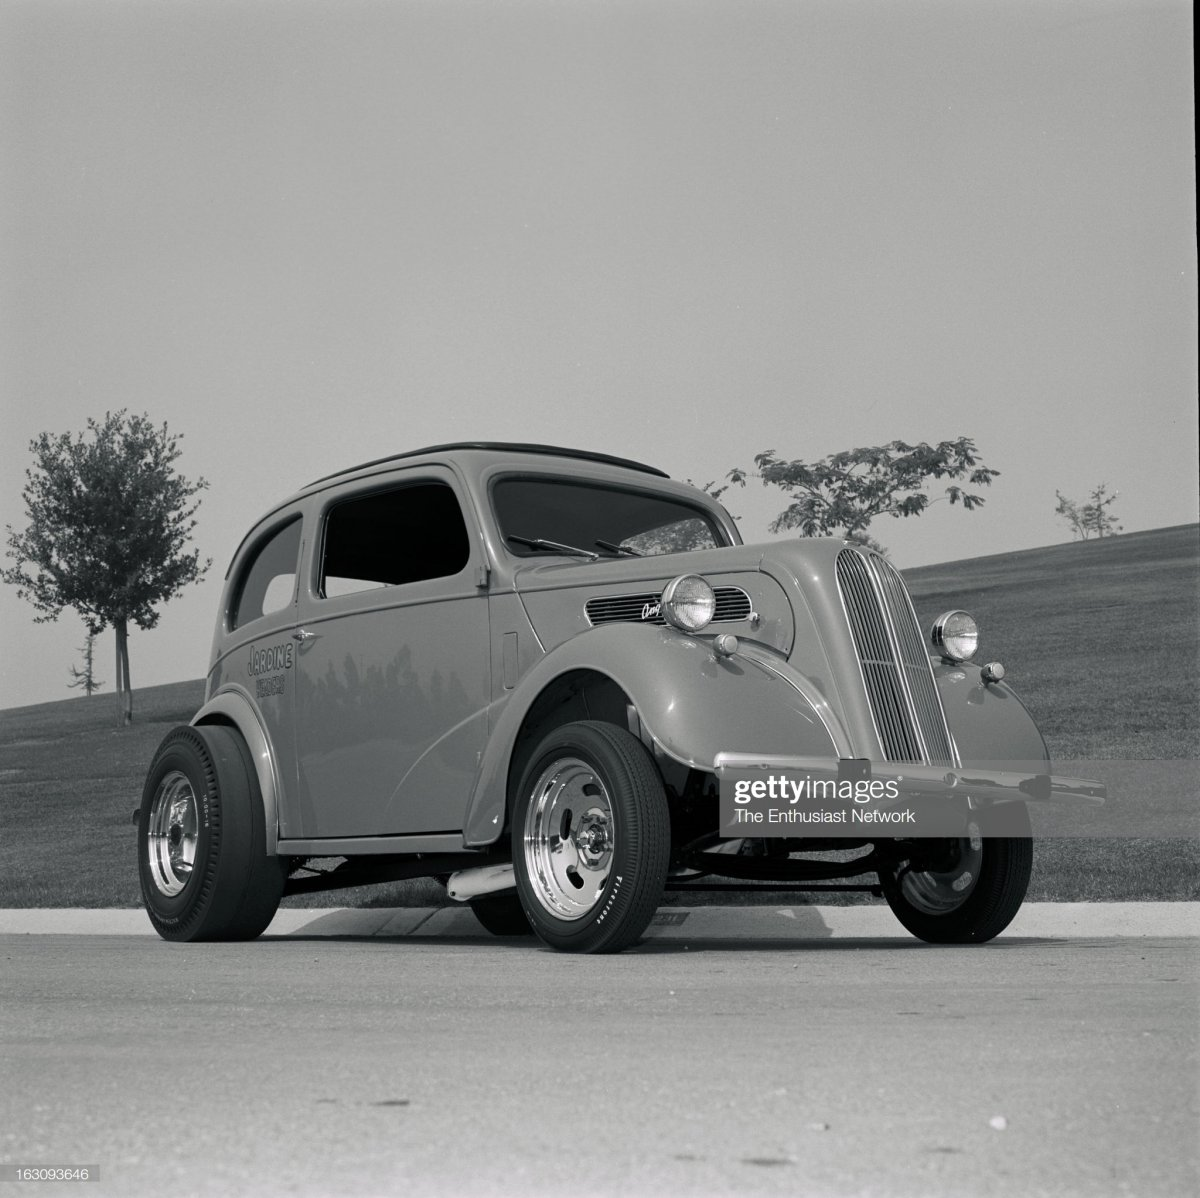 Ron Cappel's all-metal 1951 Ford Anglia.jpg